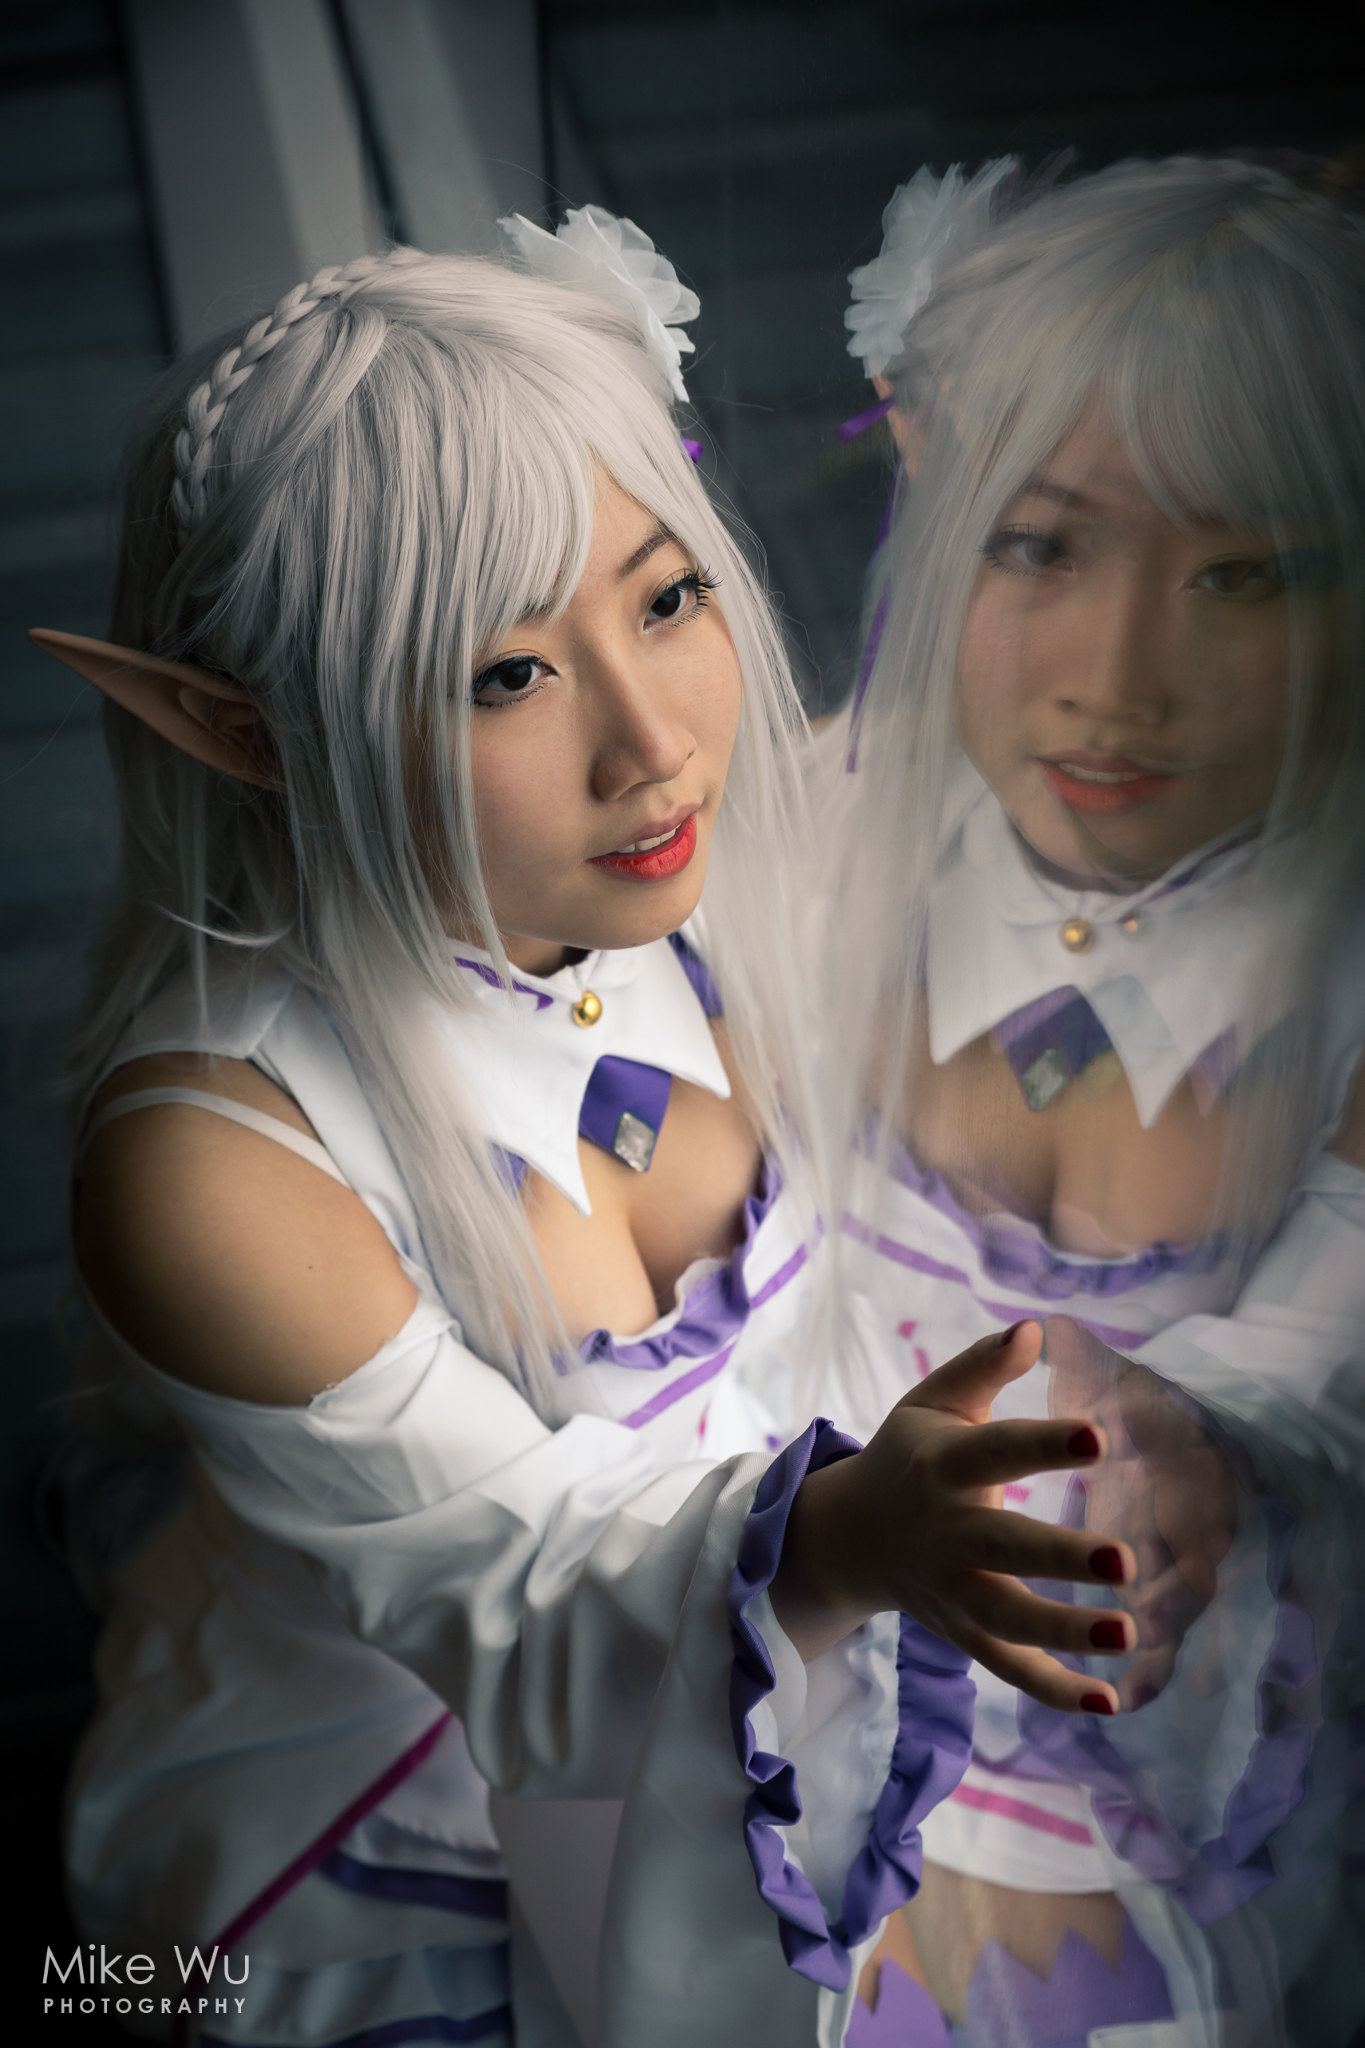 cosplay, emilia, half elf, character, starting life in another world, princess, anime, game, magic